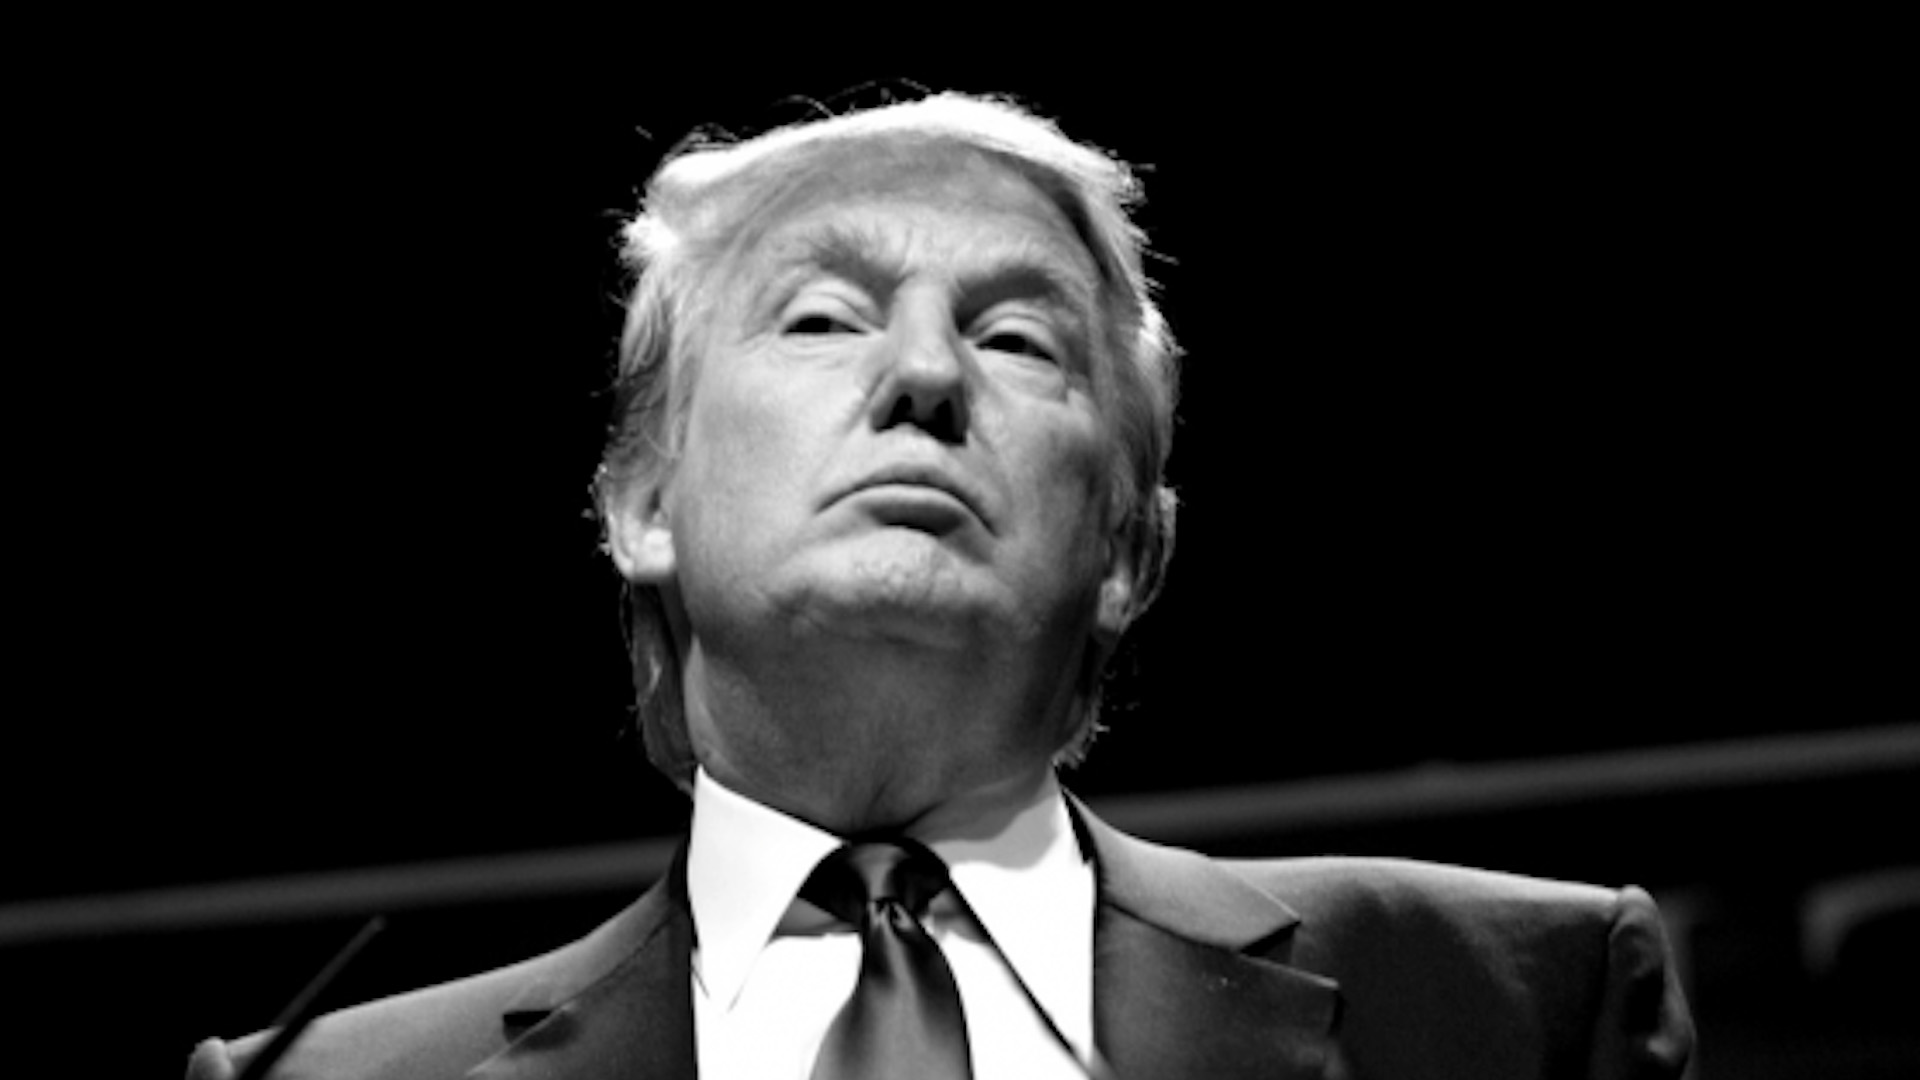 Wallpaper donald trump black white hd wallpapers upload at october 1